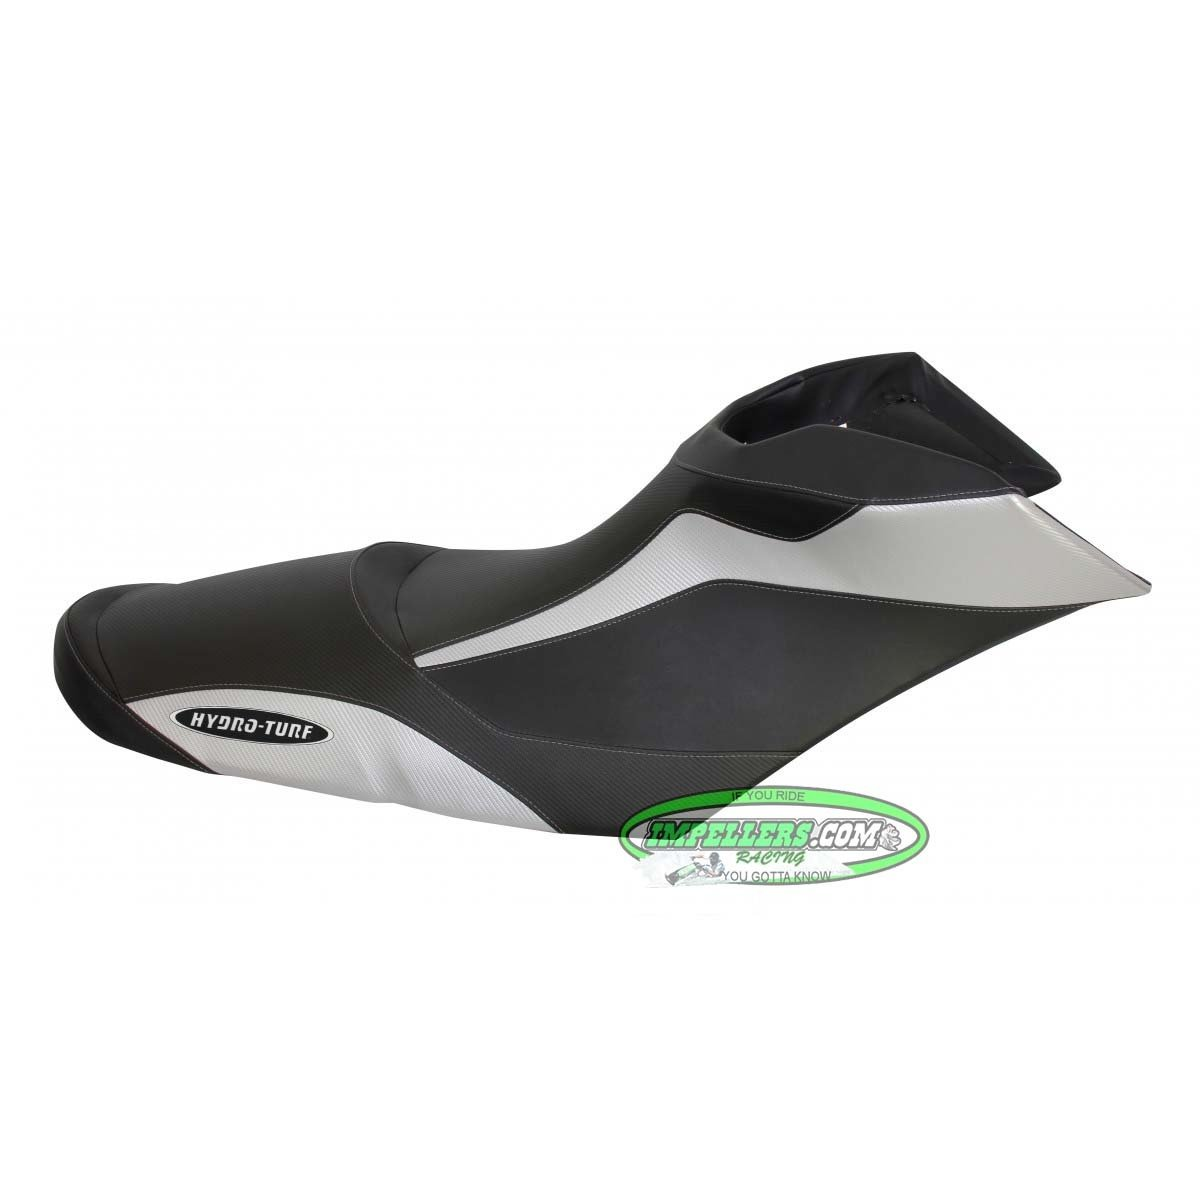 Sea-Doo Seat Cover RXP-X 260 (12-15) / RXP-X 300